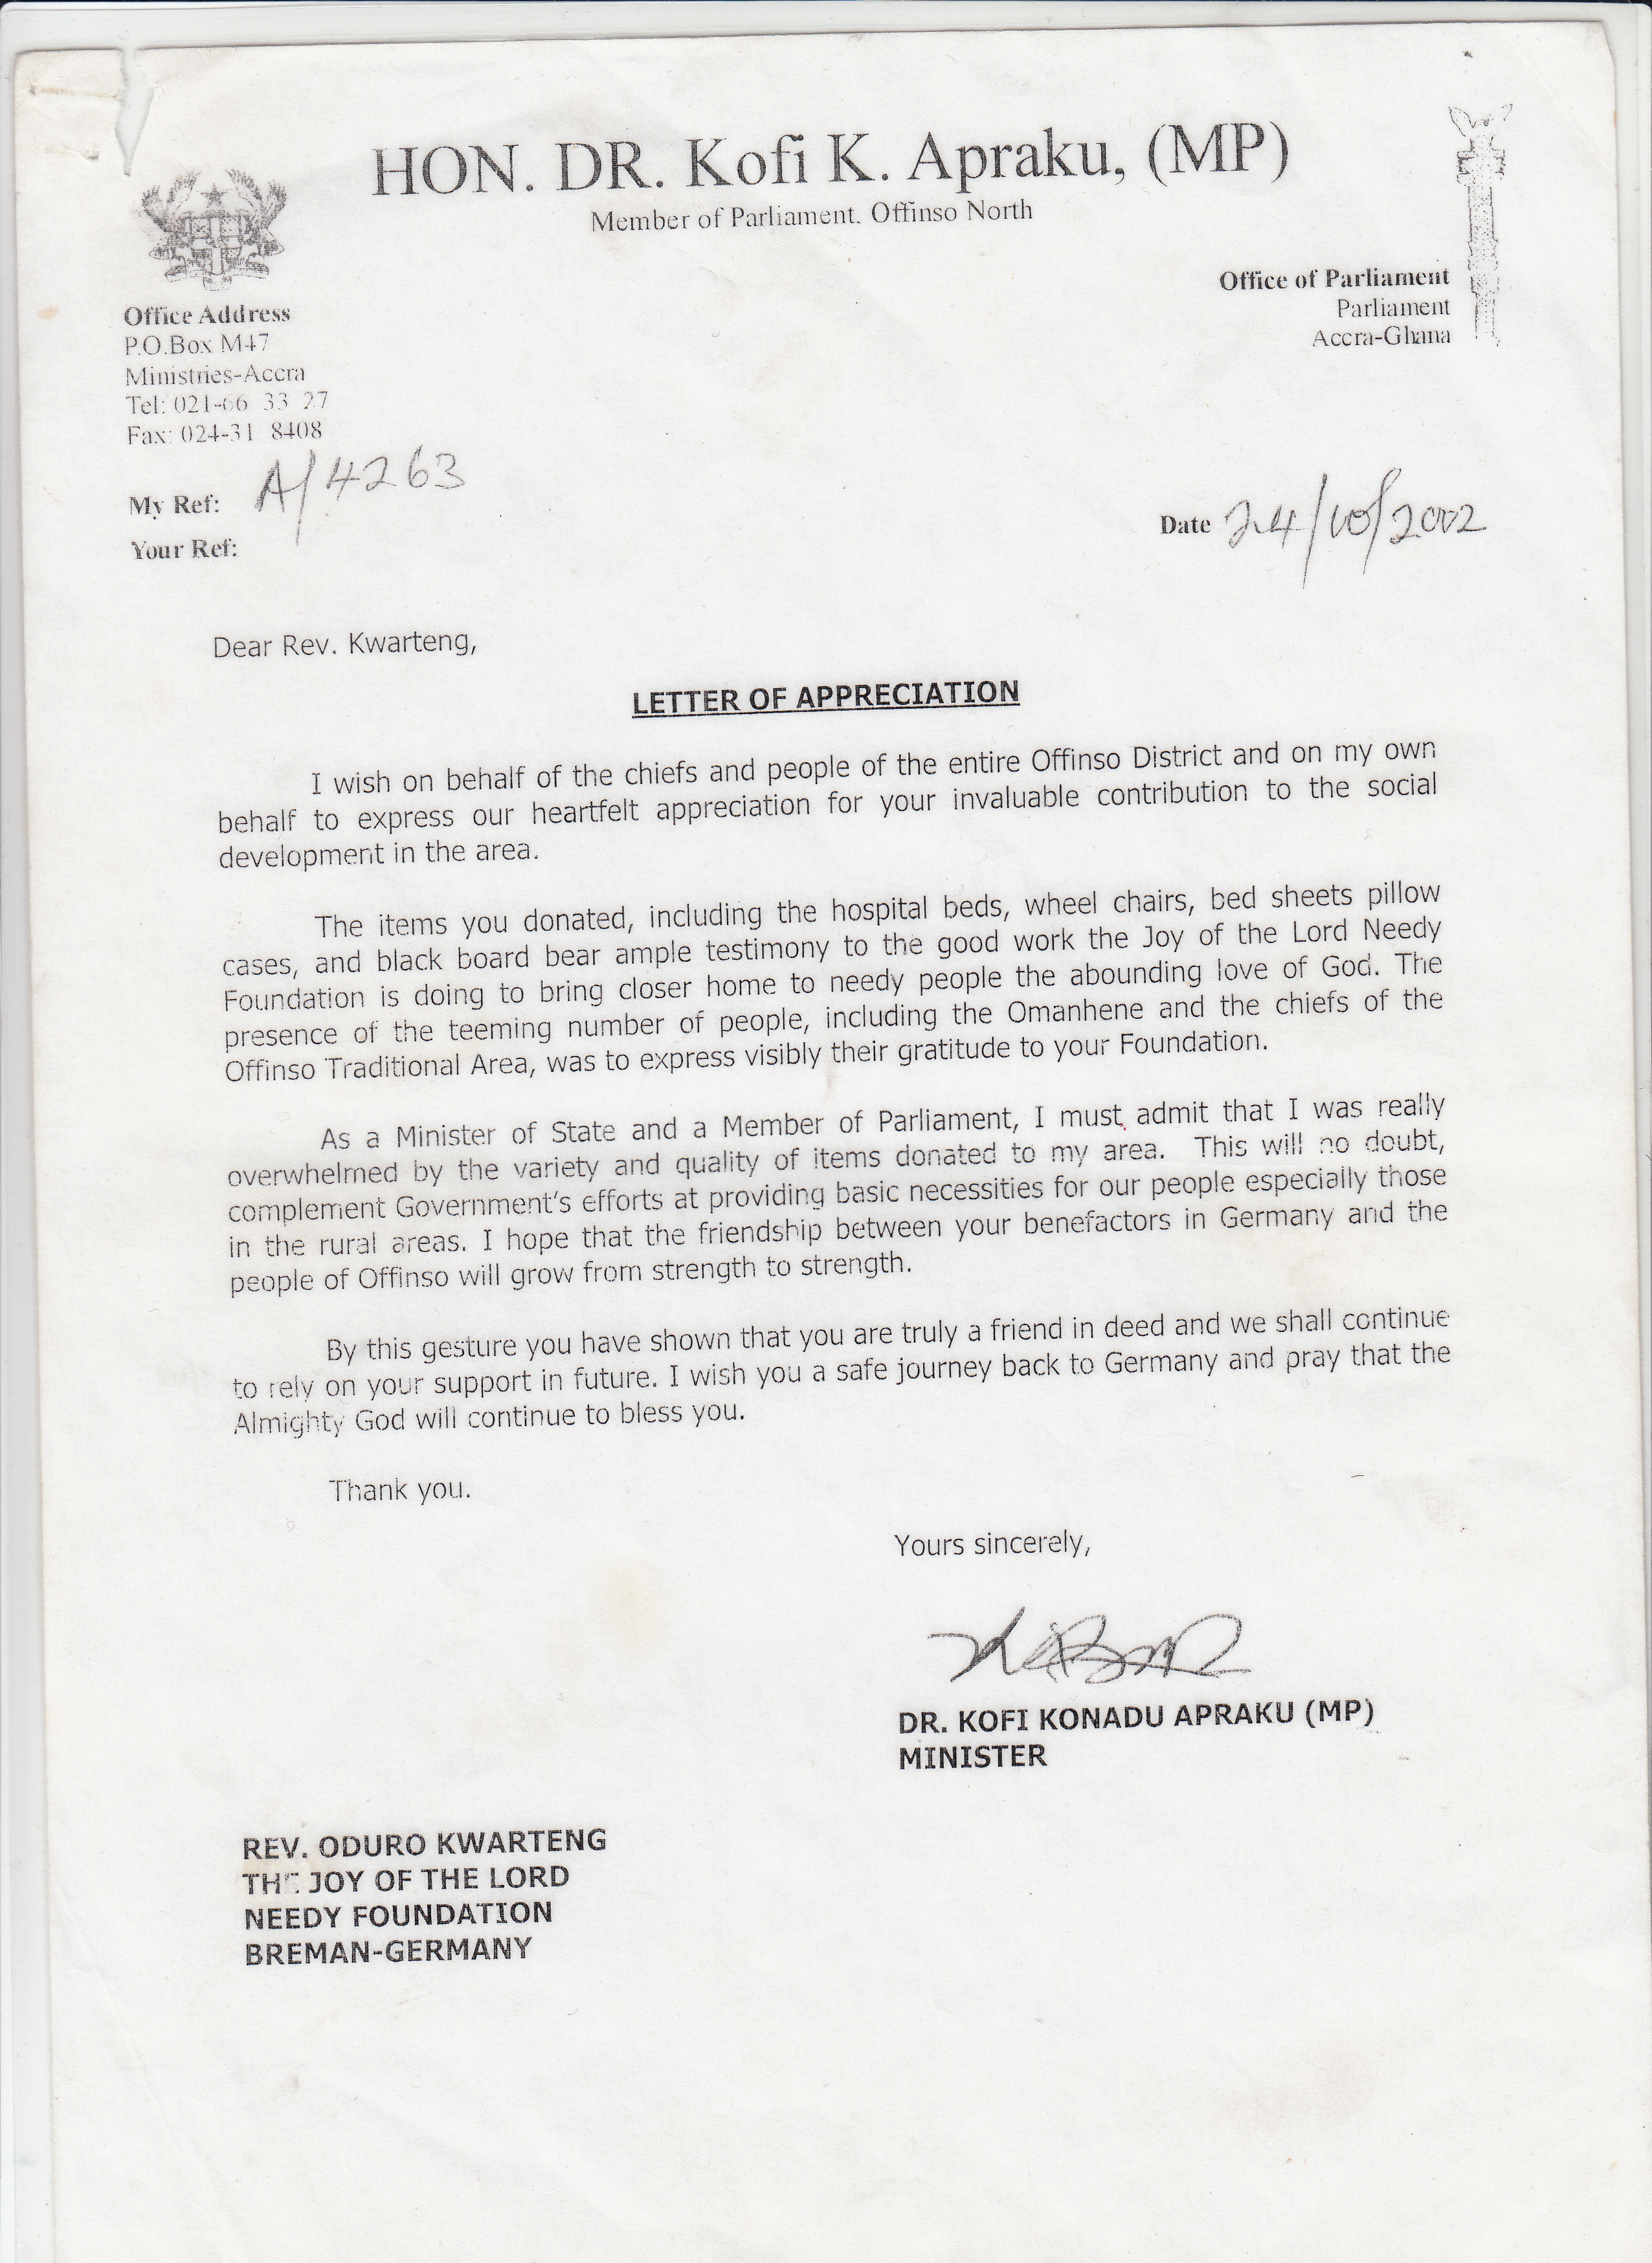 Letter of Appreciation from the Offinso North MP